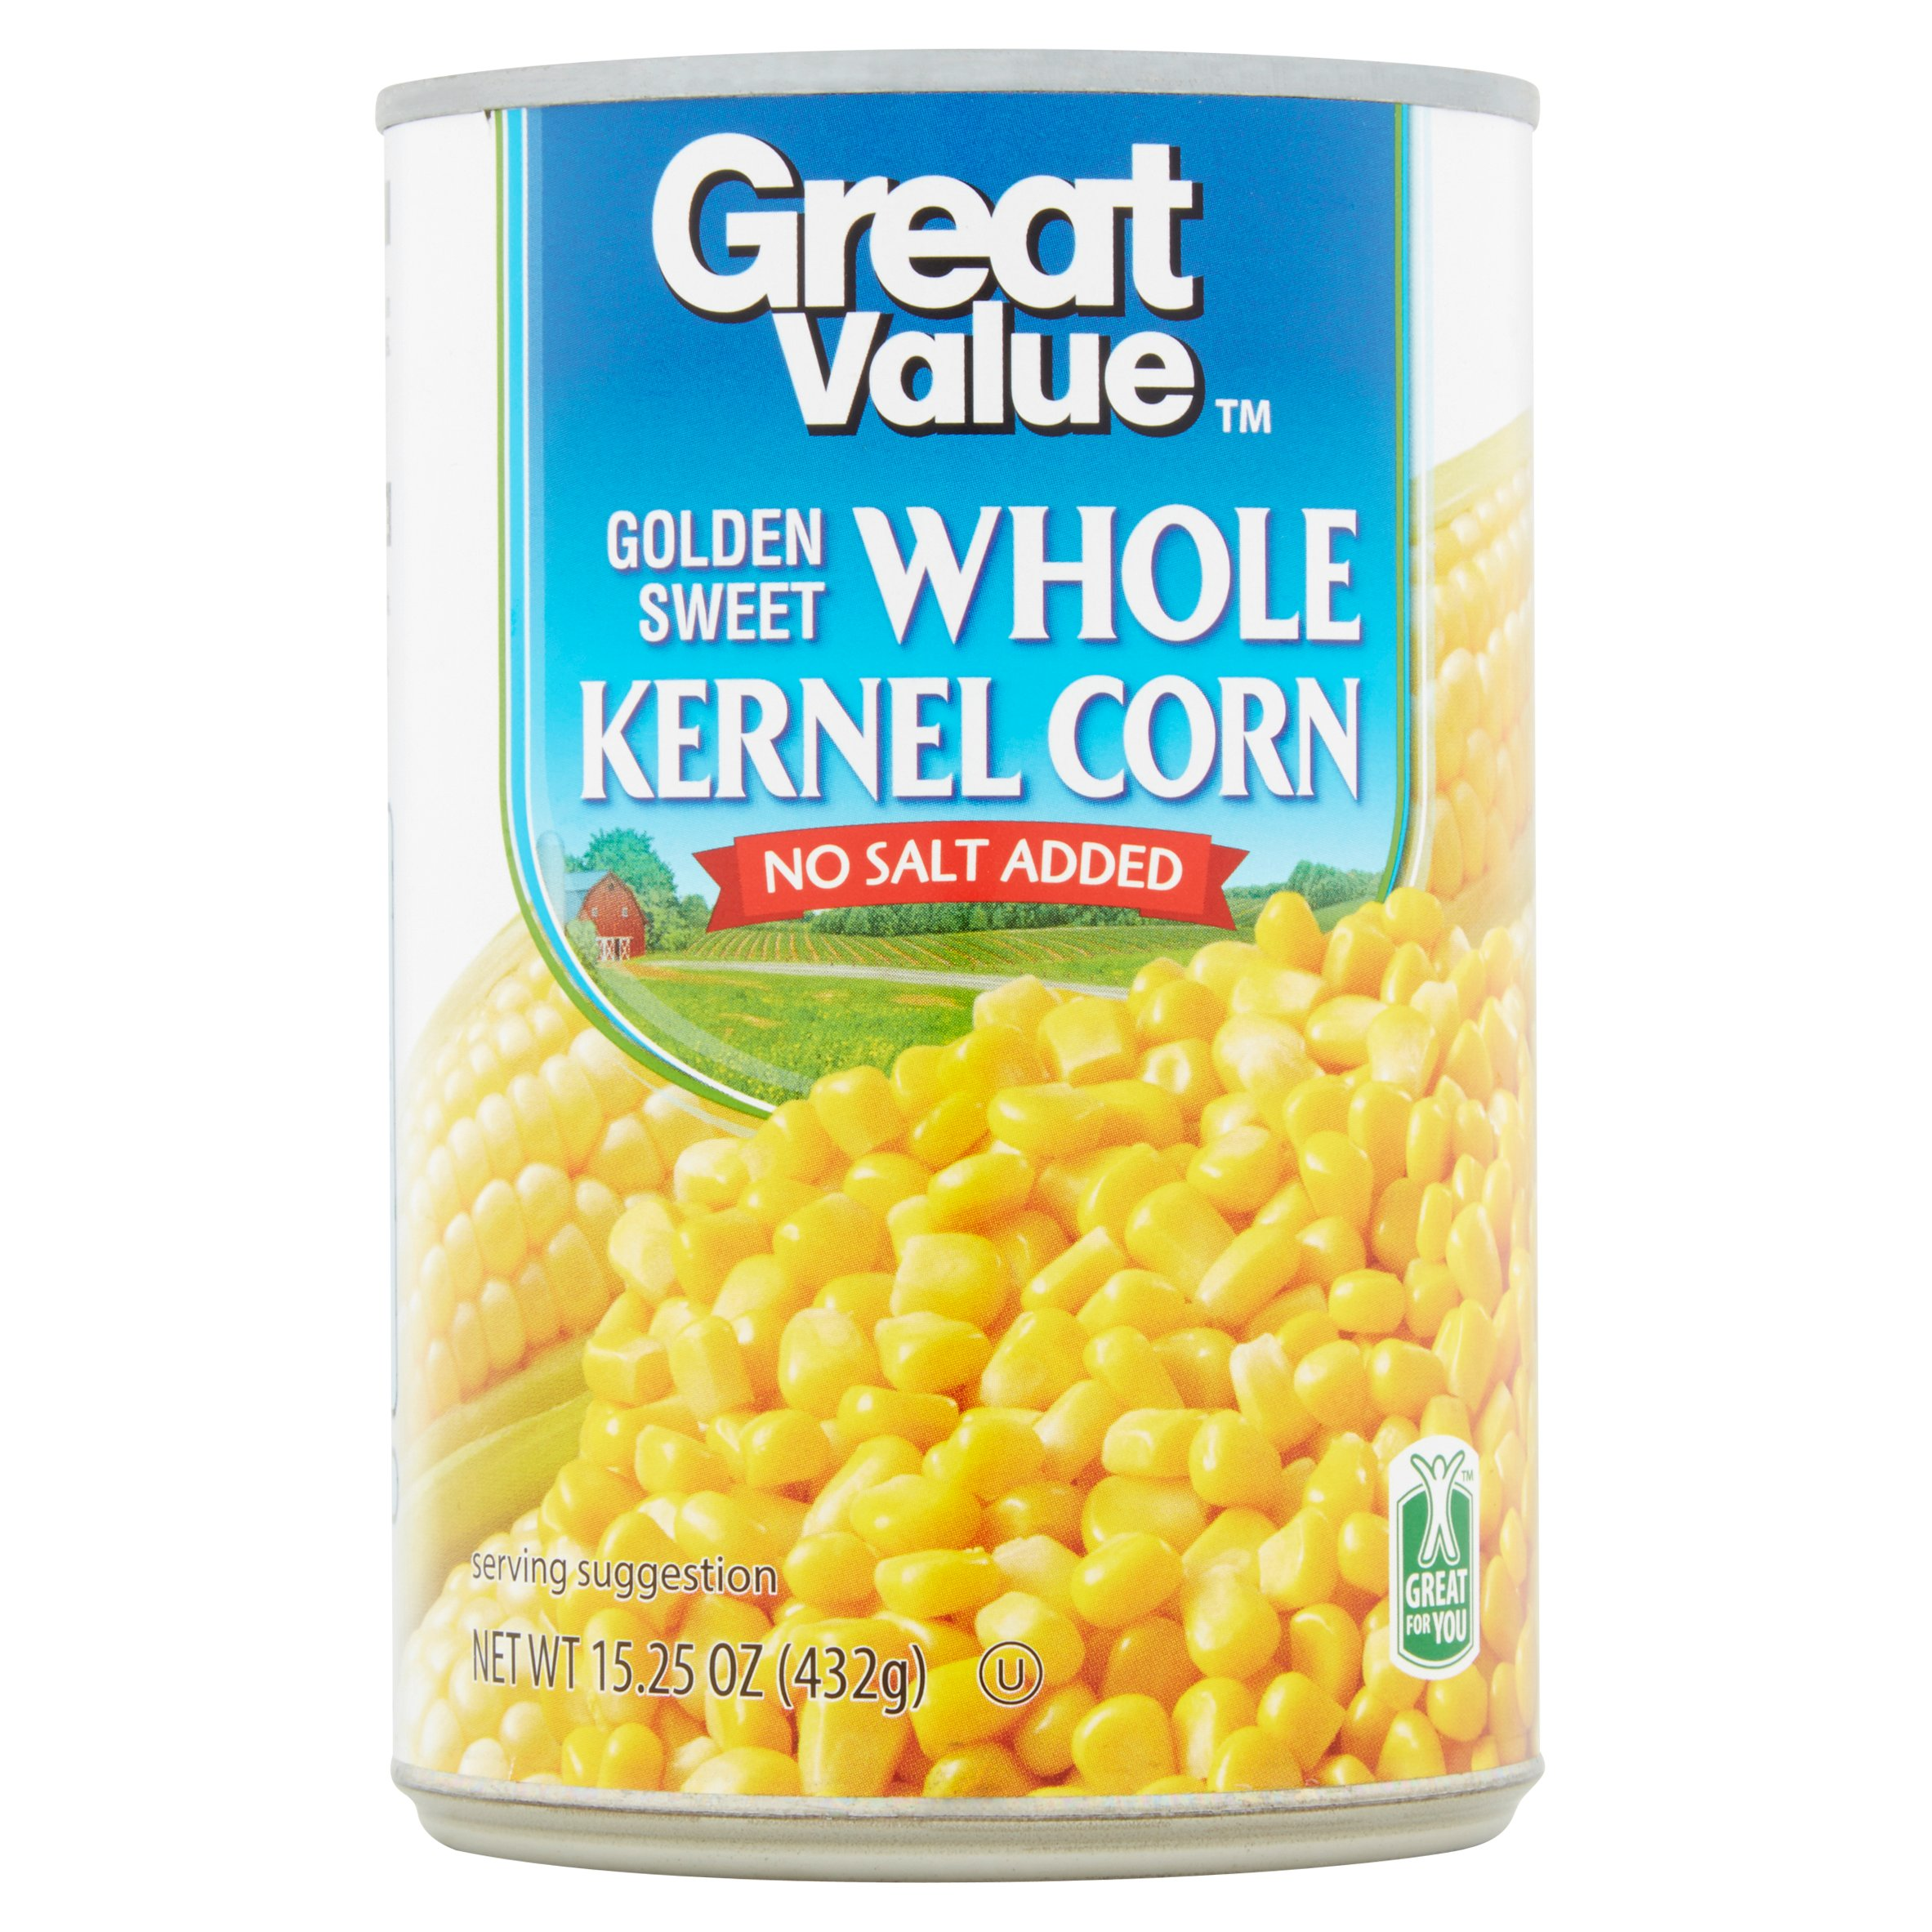 Great Value Golden Sweet Whole Kernel Corn, No Salt Added, 15.25 oz